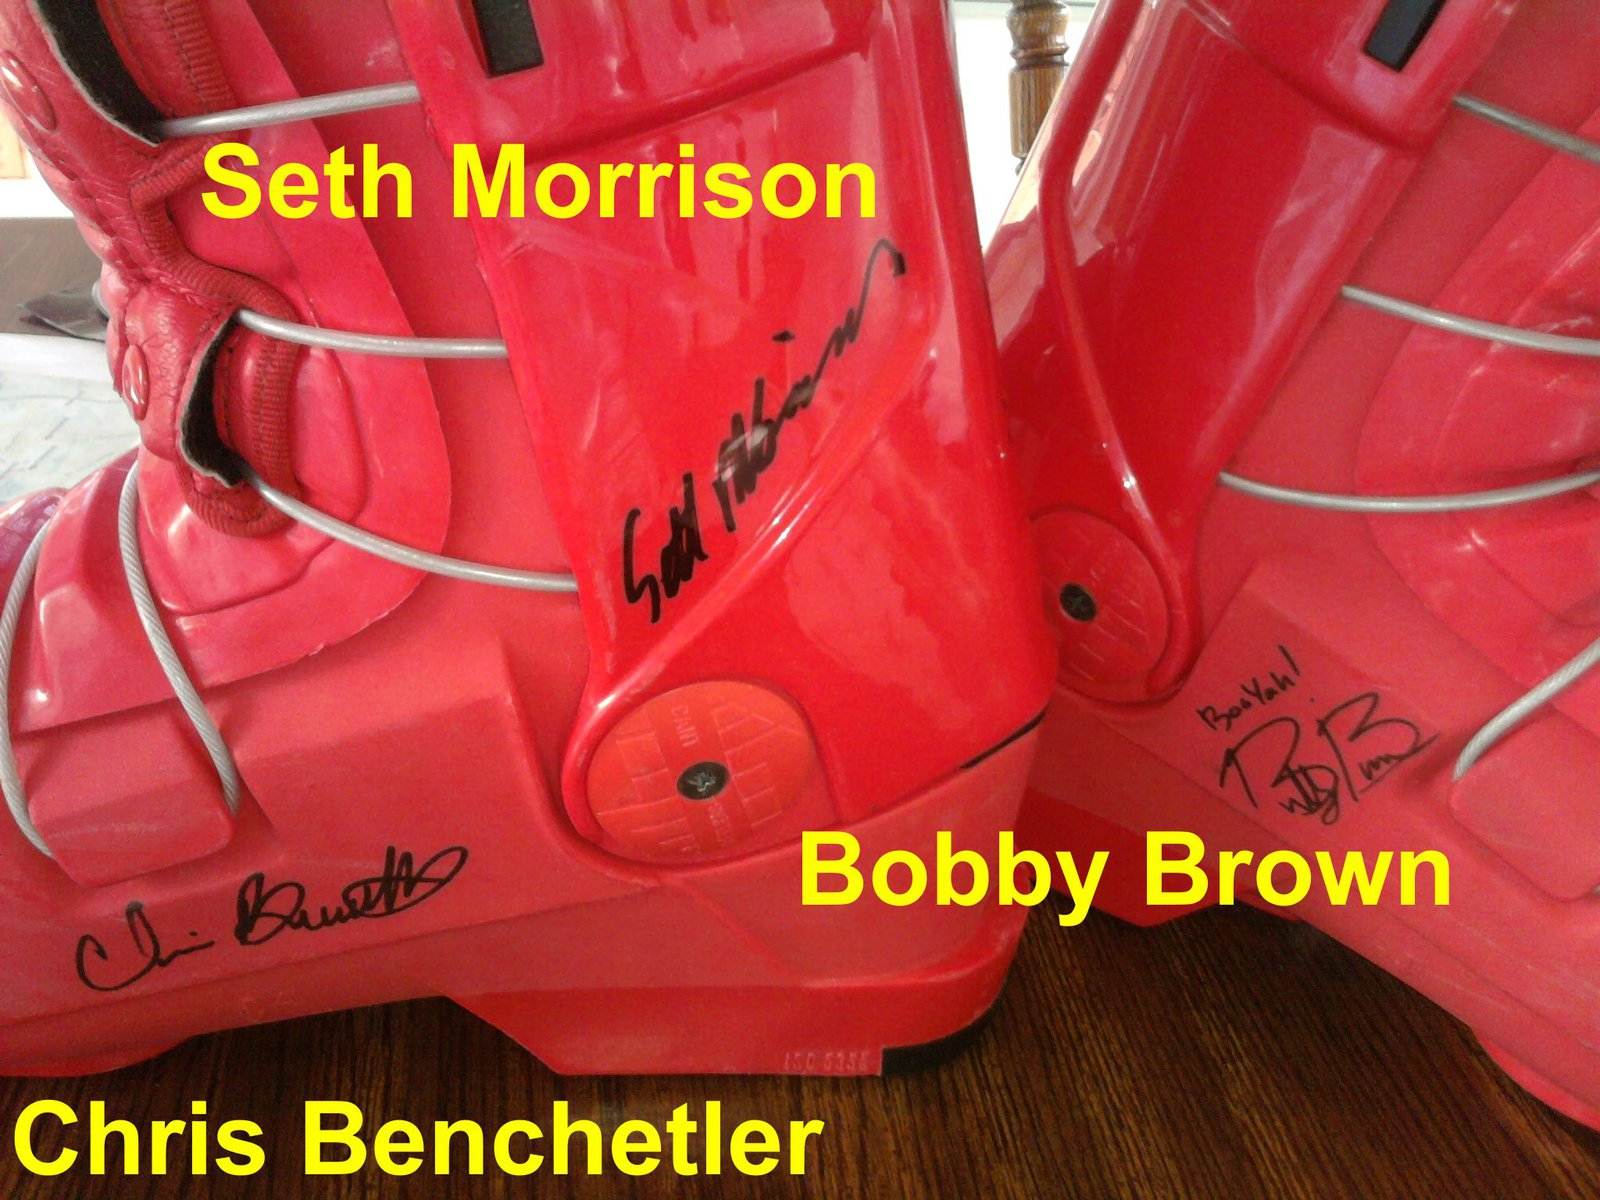 Bobby Brown, Seth Morrison, Chris Benchetler